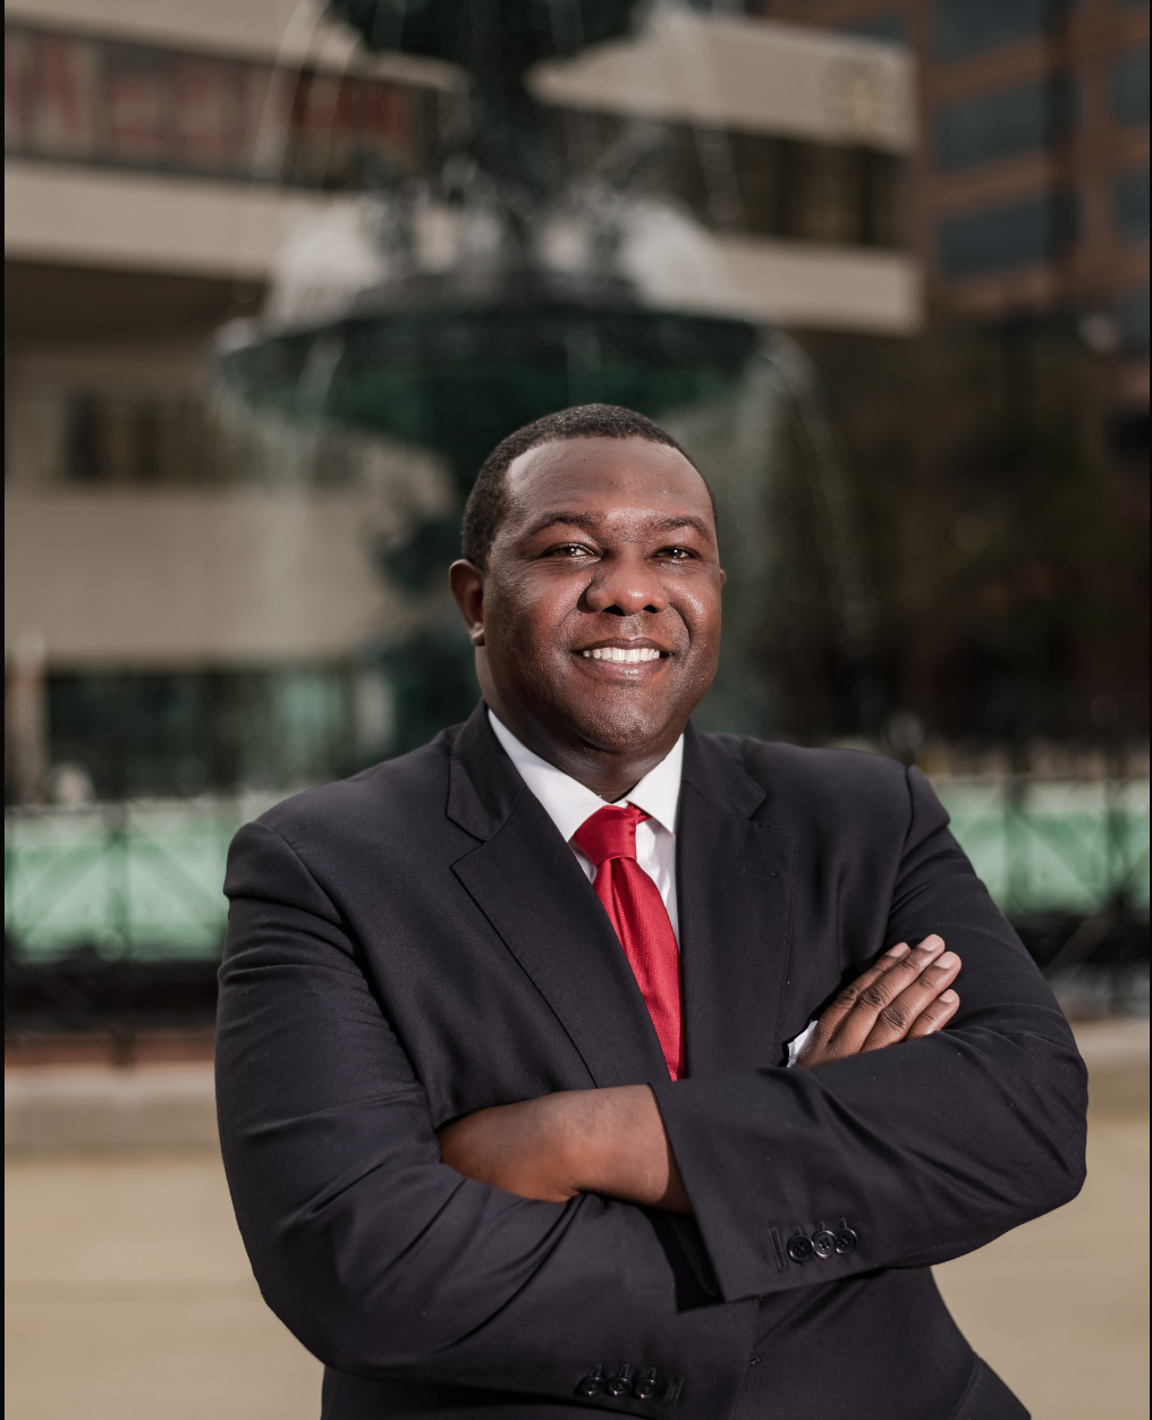 JC Love, a Montgomery attorney, announced his run for mayor Thursday.